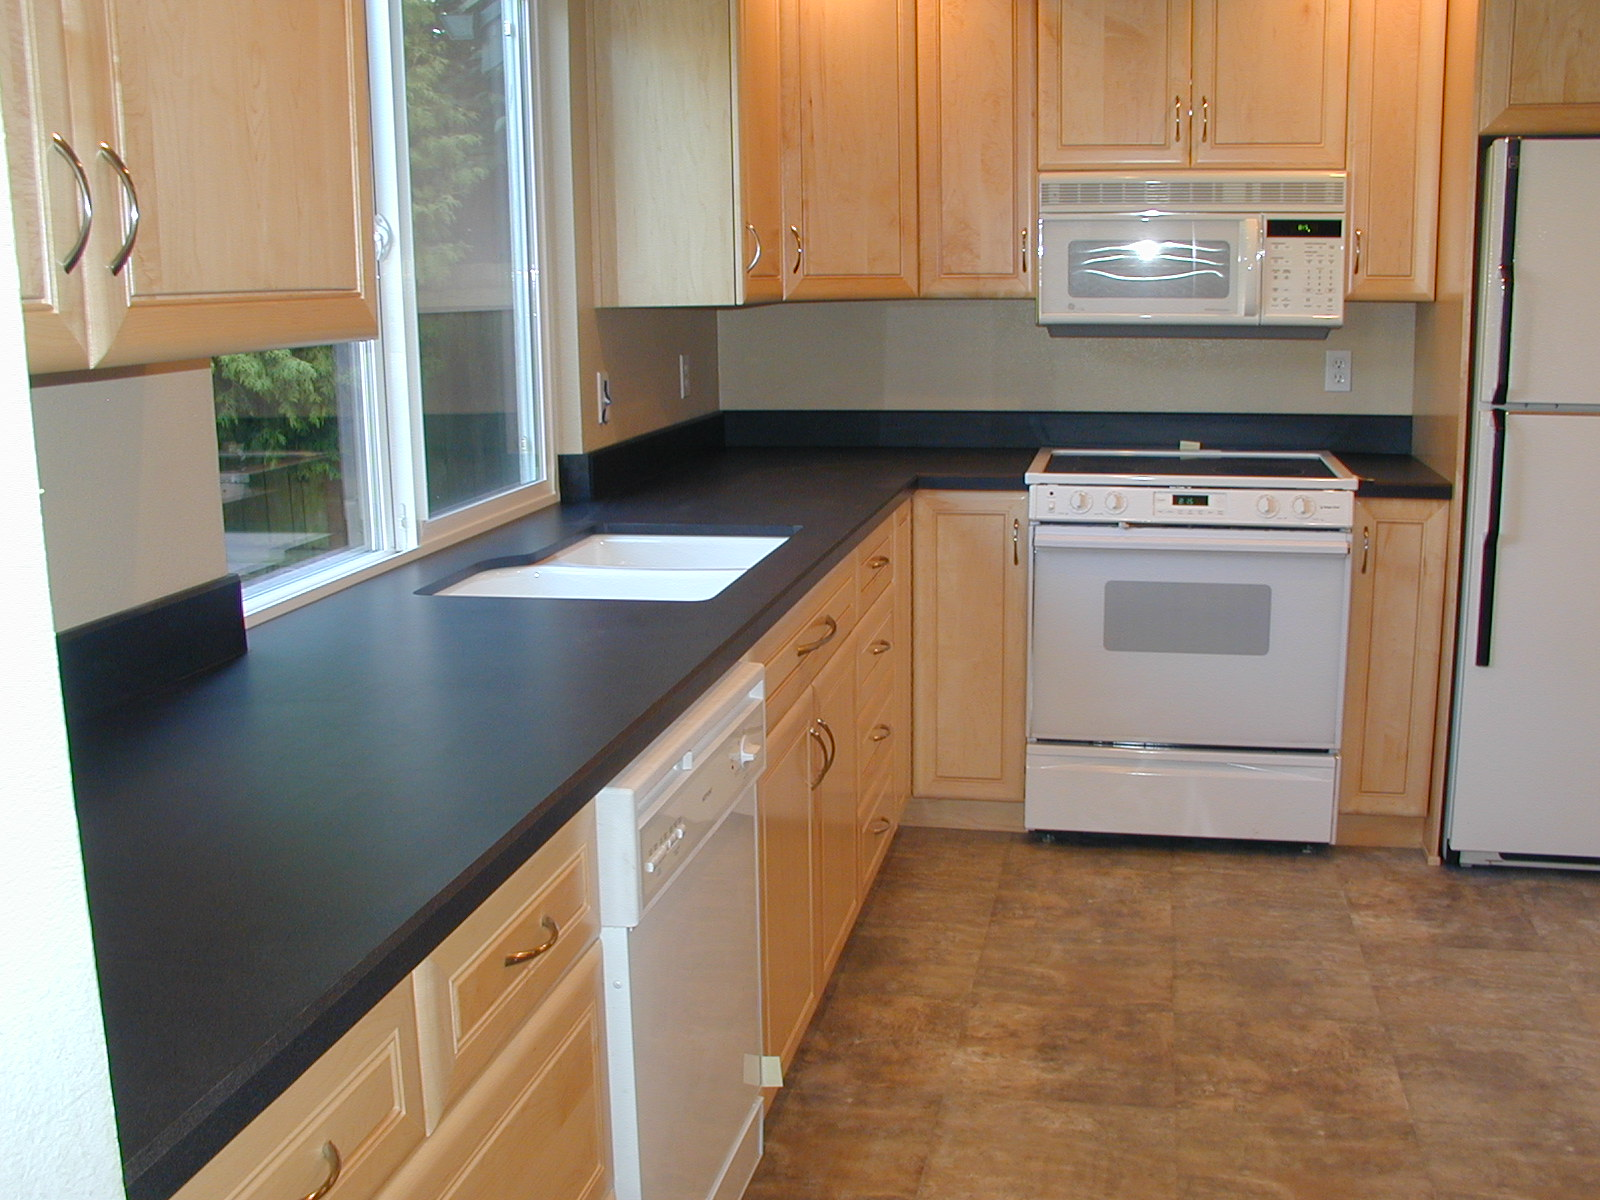 Kitchens With Laminate Countertops